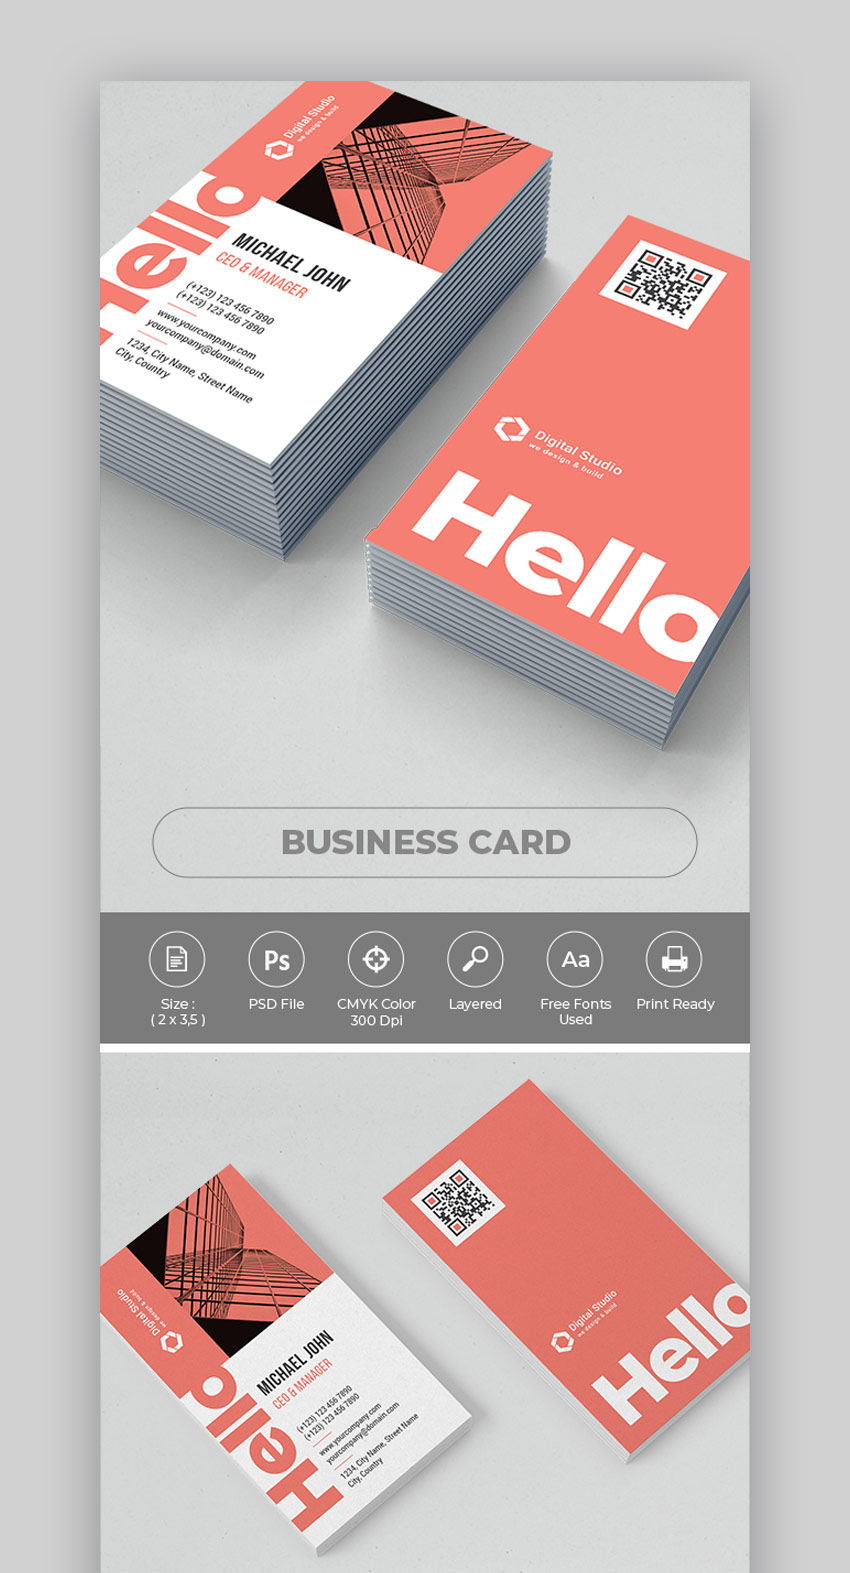 Business Card Photoshop